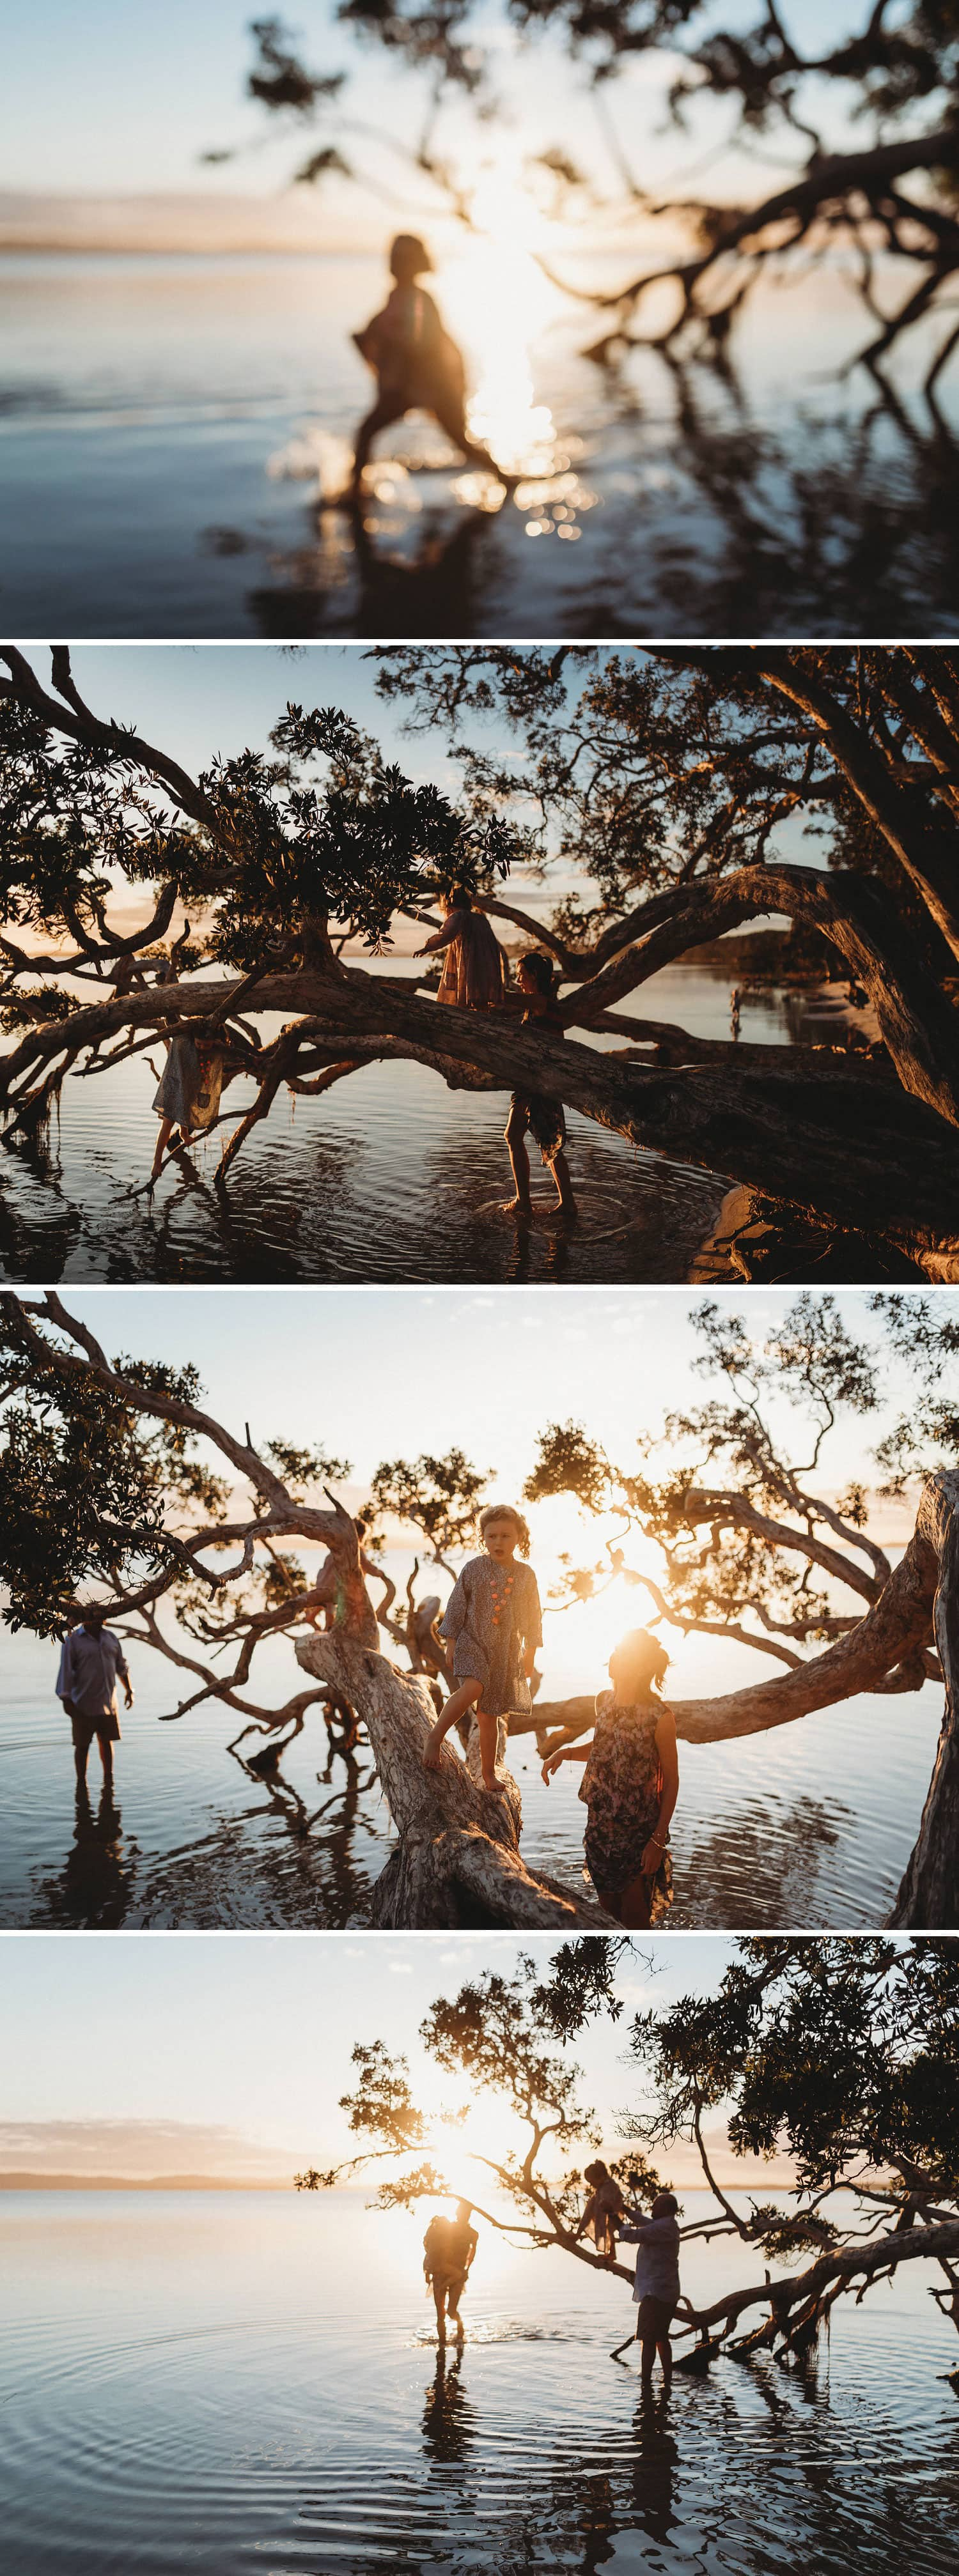 Family-photos-that-are-creative-sydney